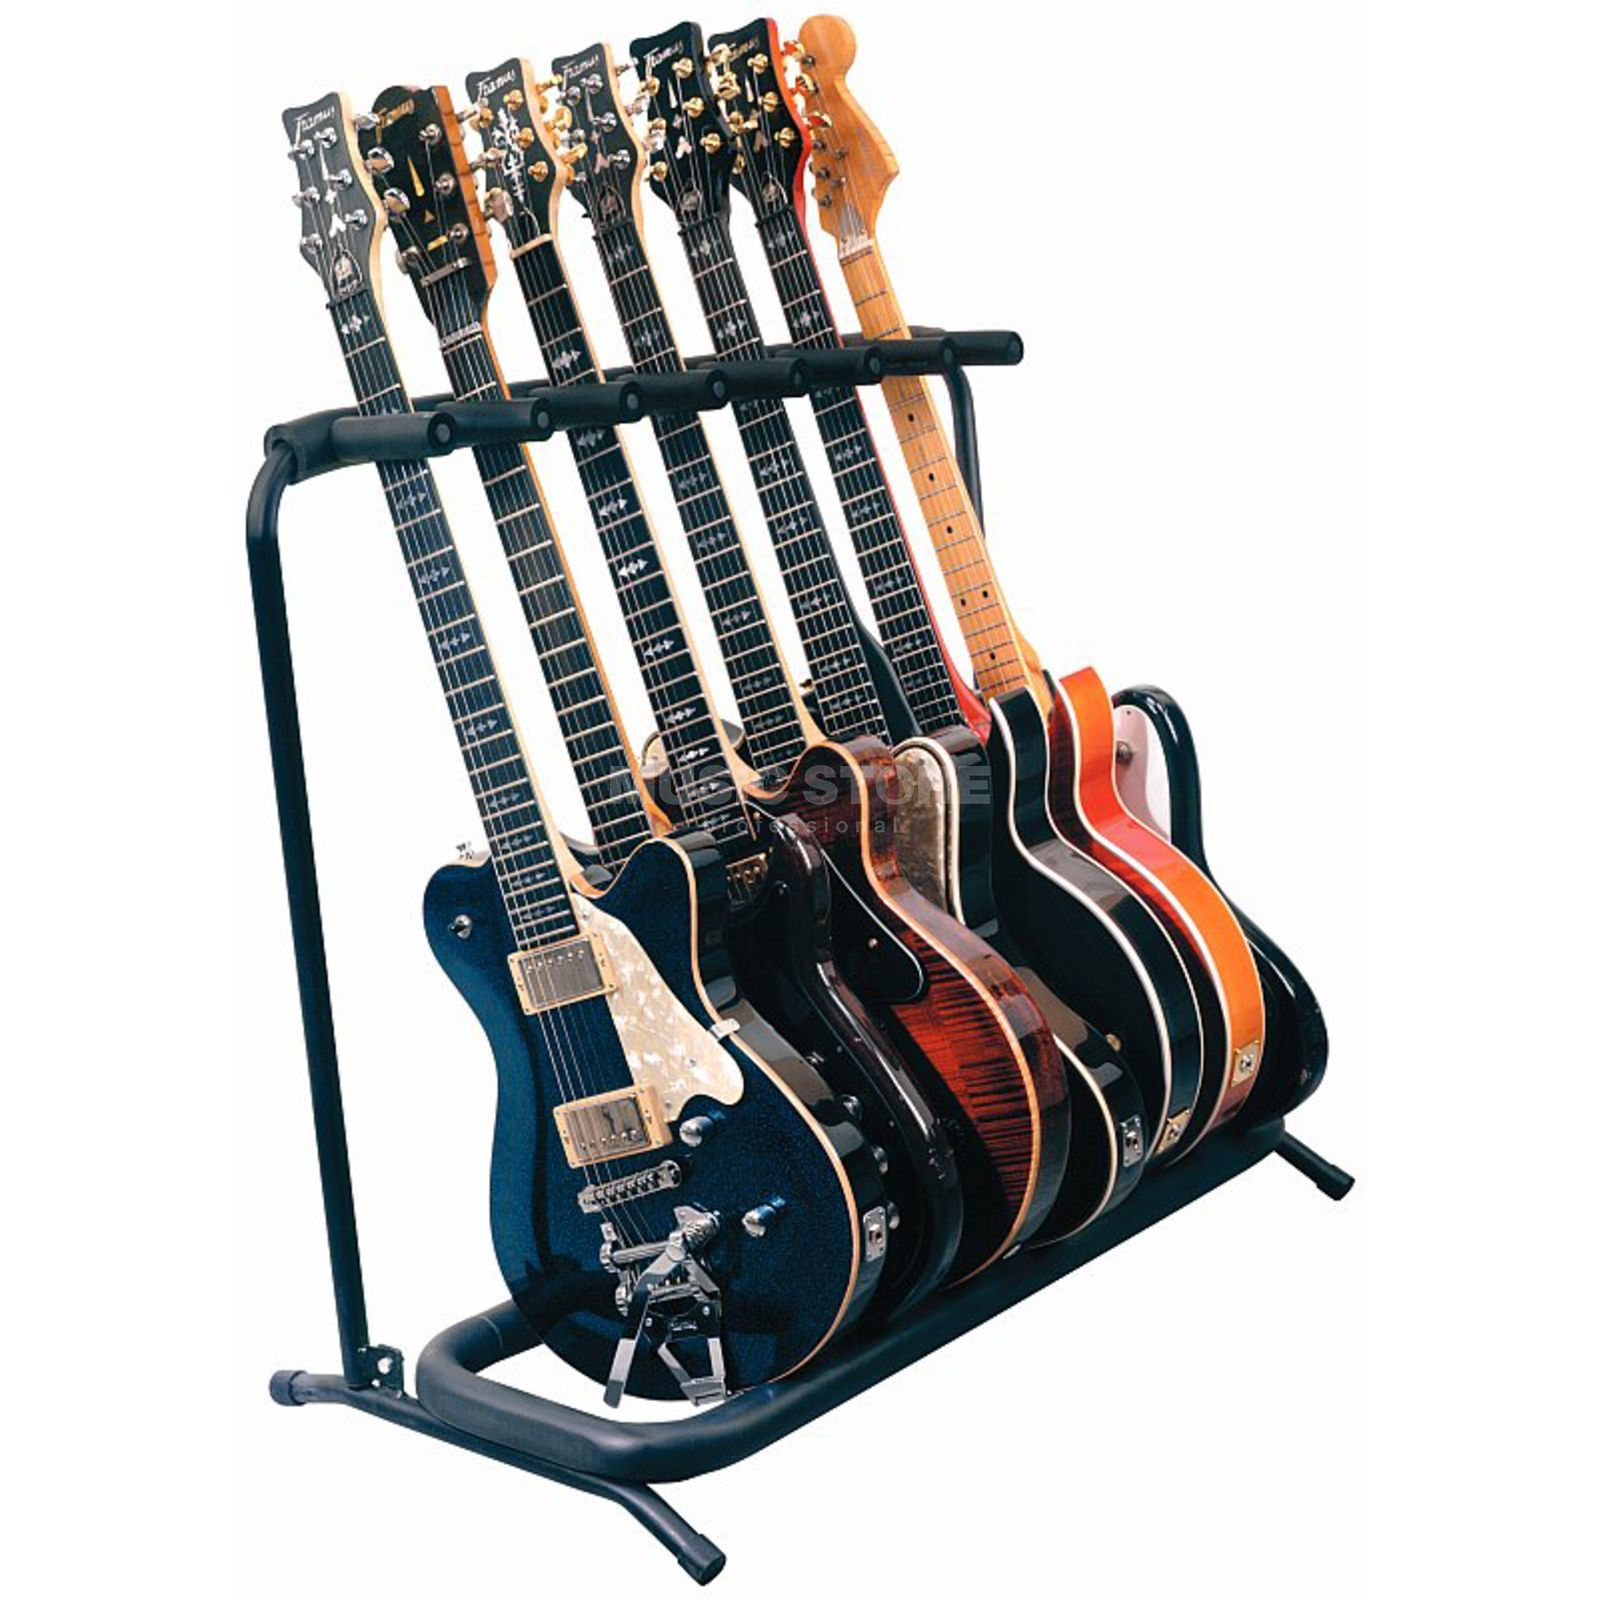 Rockstand 7er Multiple Guitar Stand RS 20862 B/2 Изображение товара